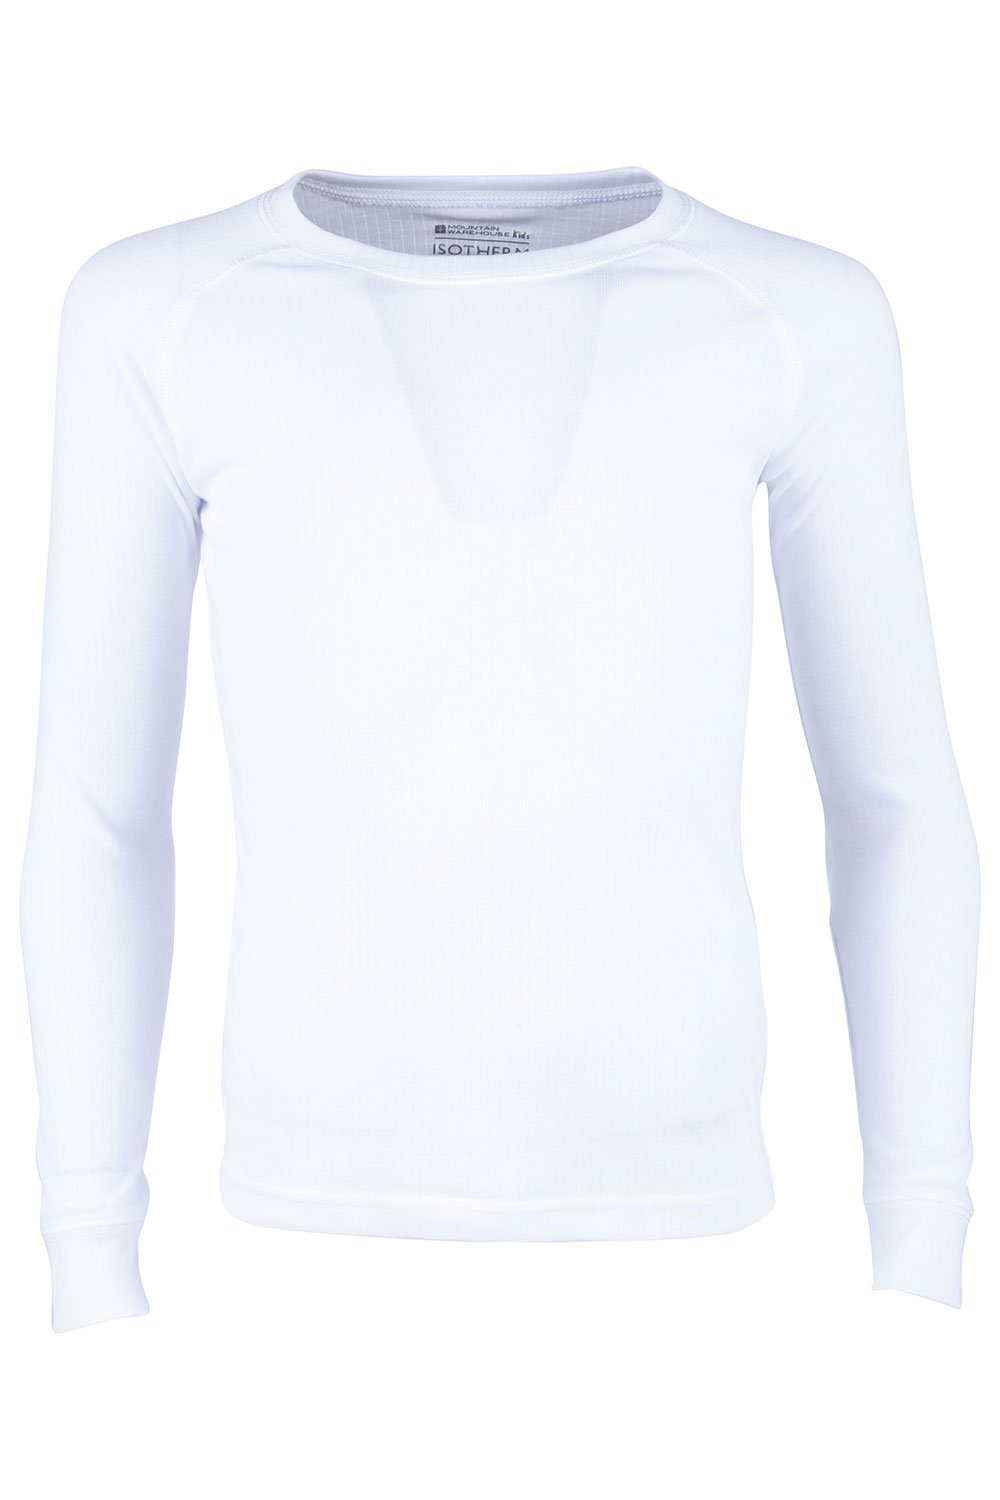 Mountain Warehouse Talus Kids Thermal -Lightweight, Long Sleeves Top White 3-4 Years